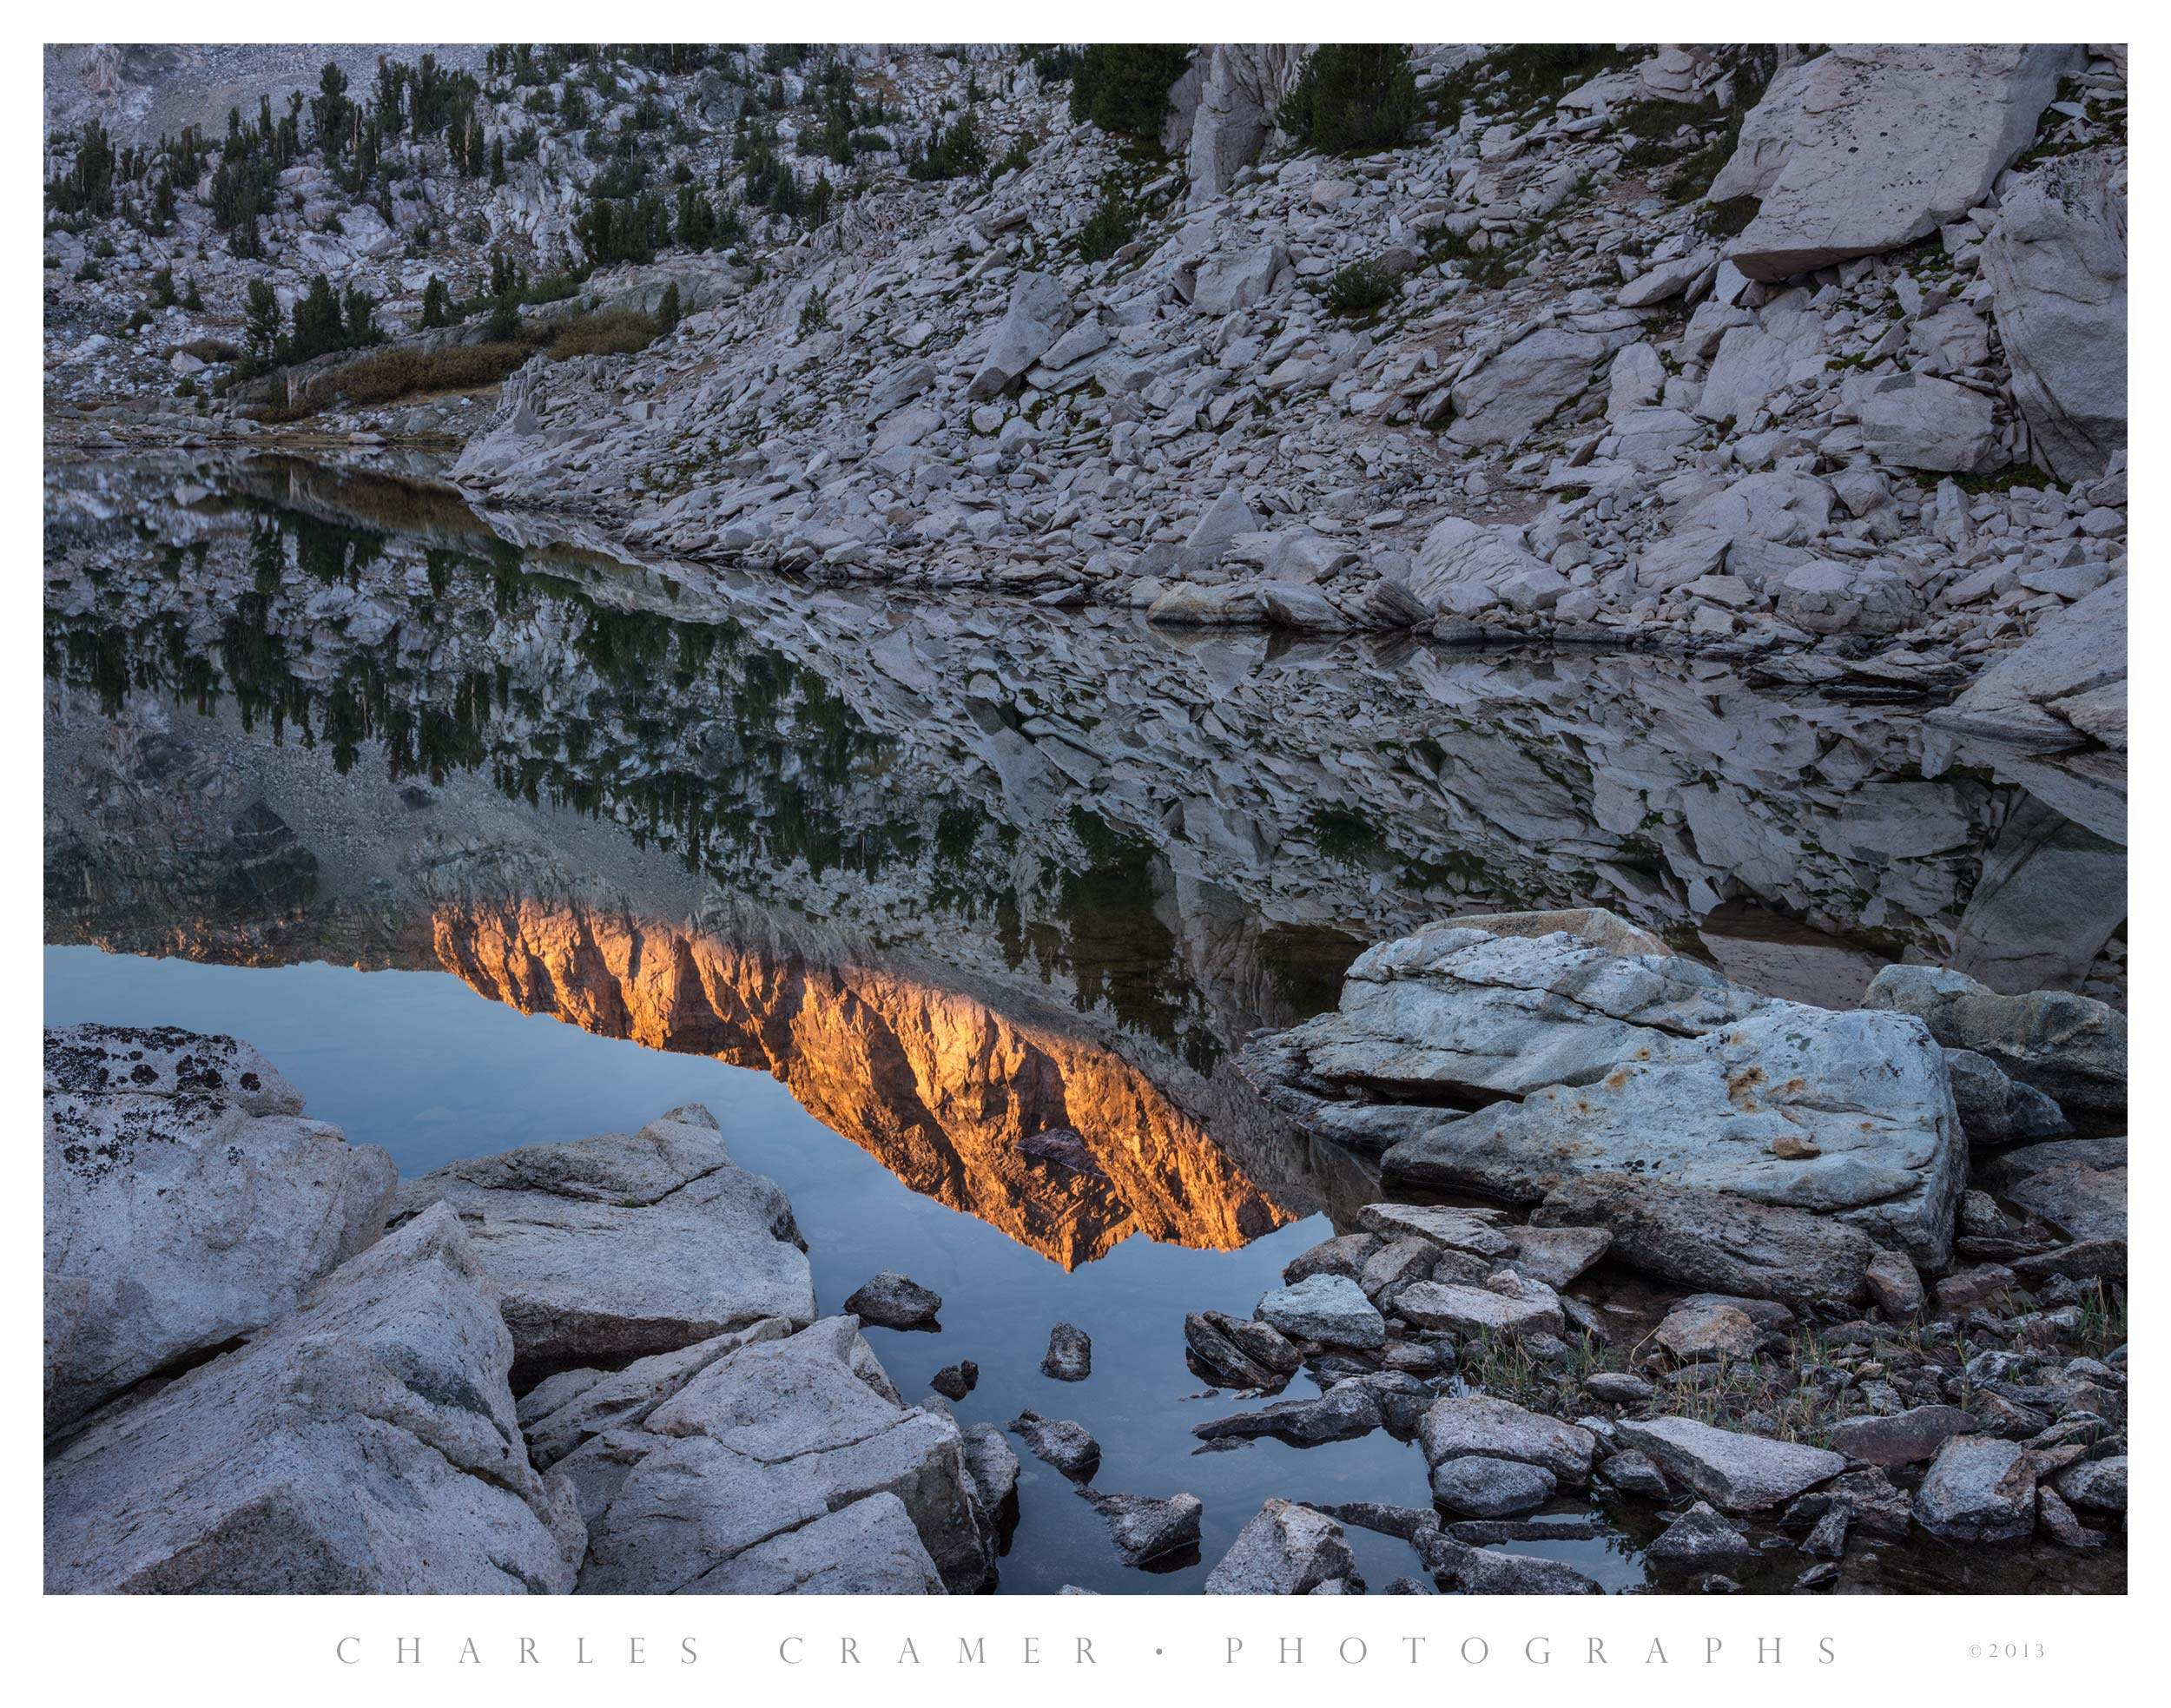 Pond at Sunrise, Sixty Lakes Basin, Kings Canyon